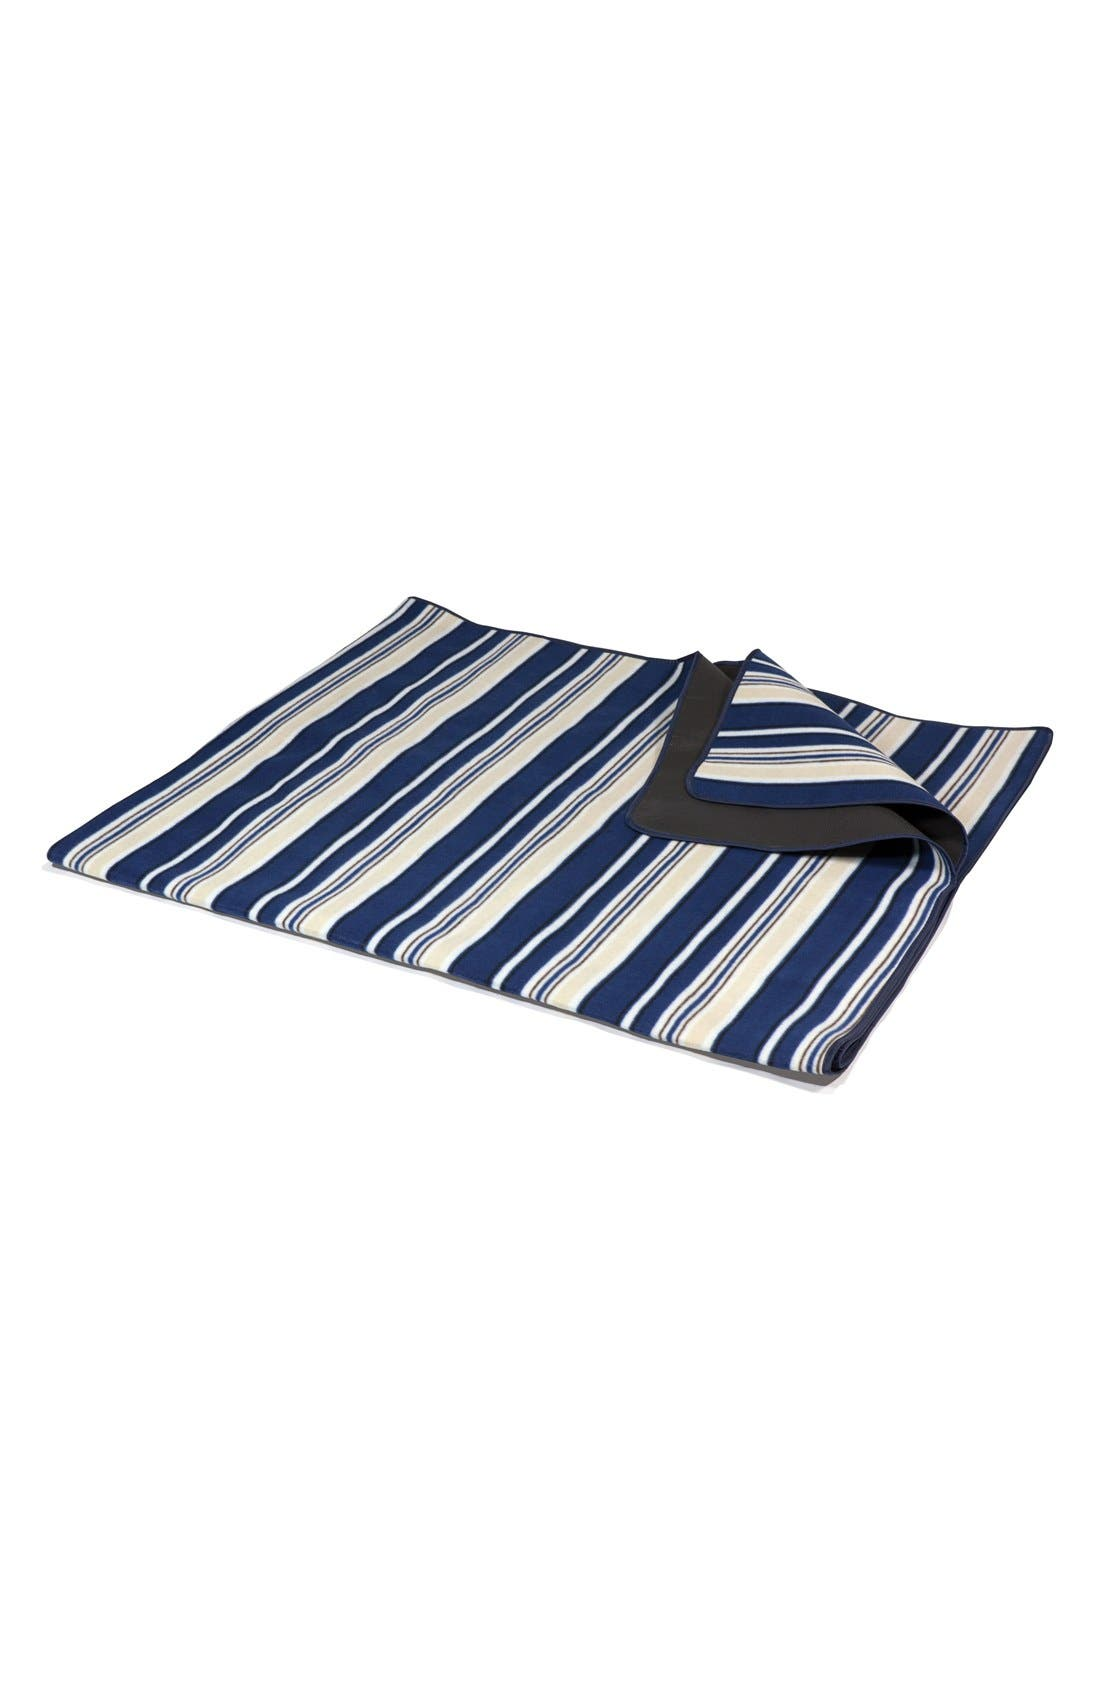 Alternate Image 1 Selected - Picnic Time 'XL' Blanket Tote